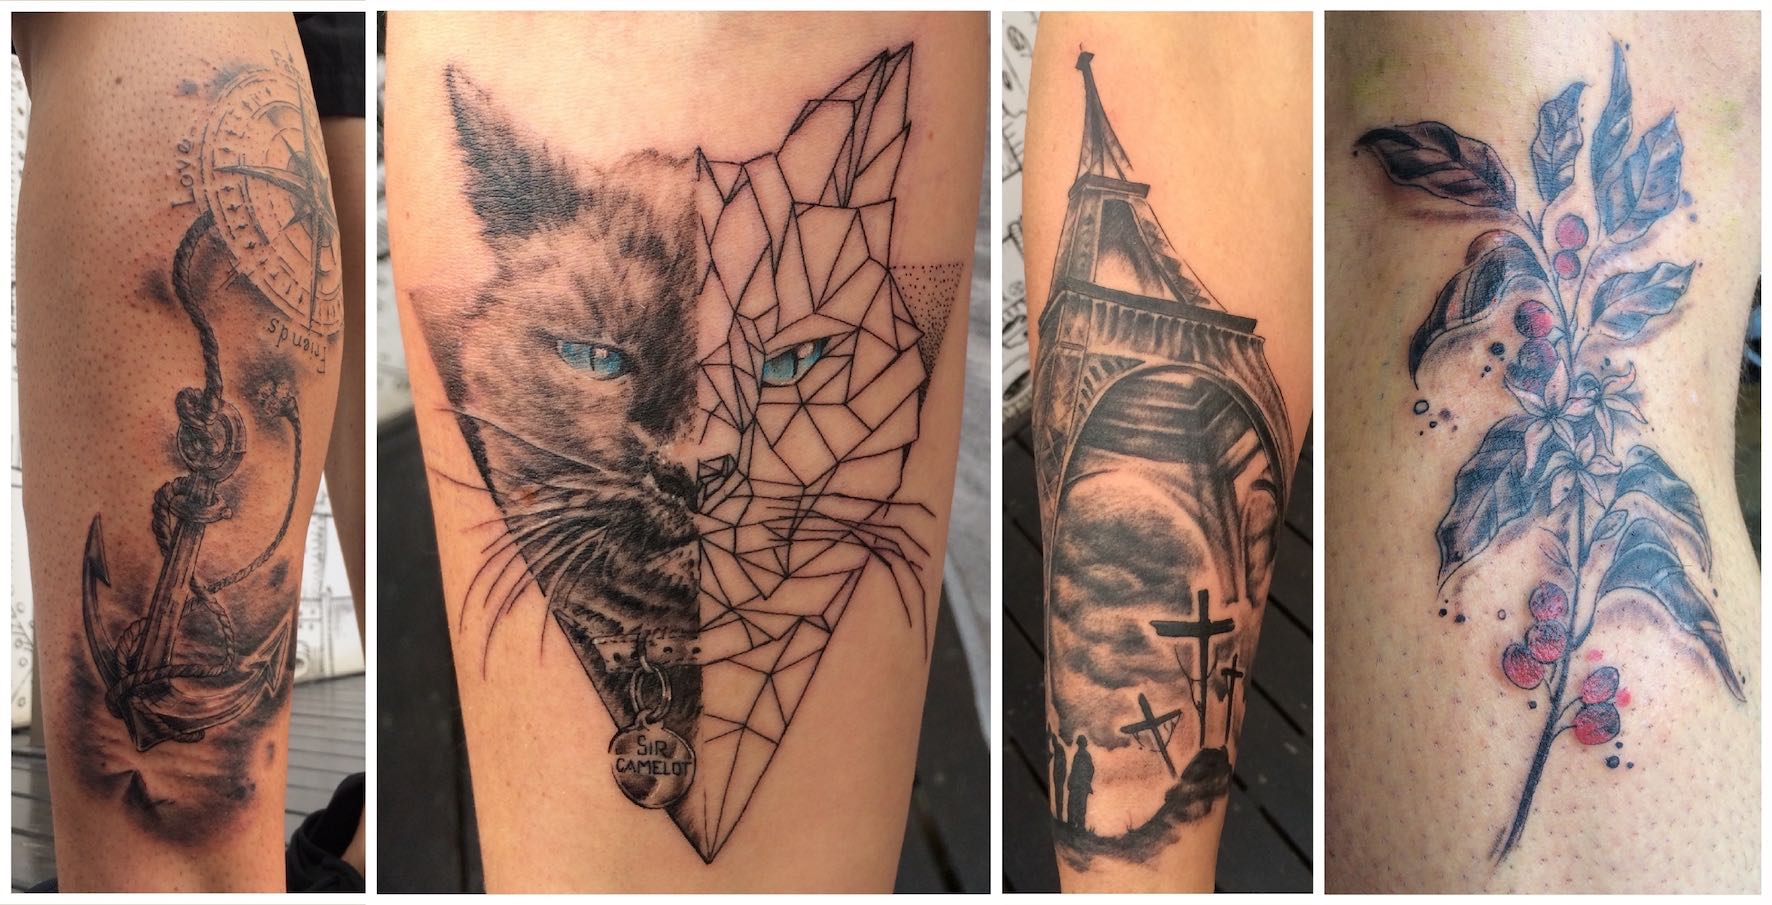 Tattoos done by Sean Pengilly